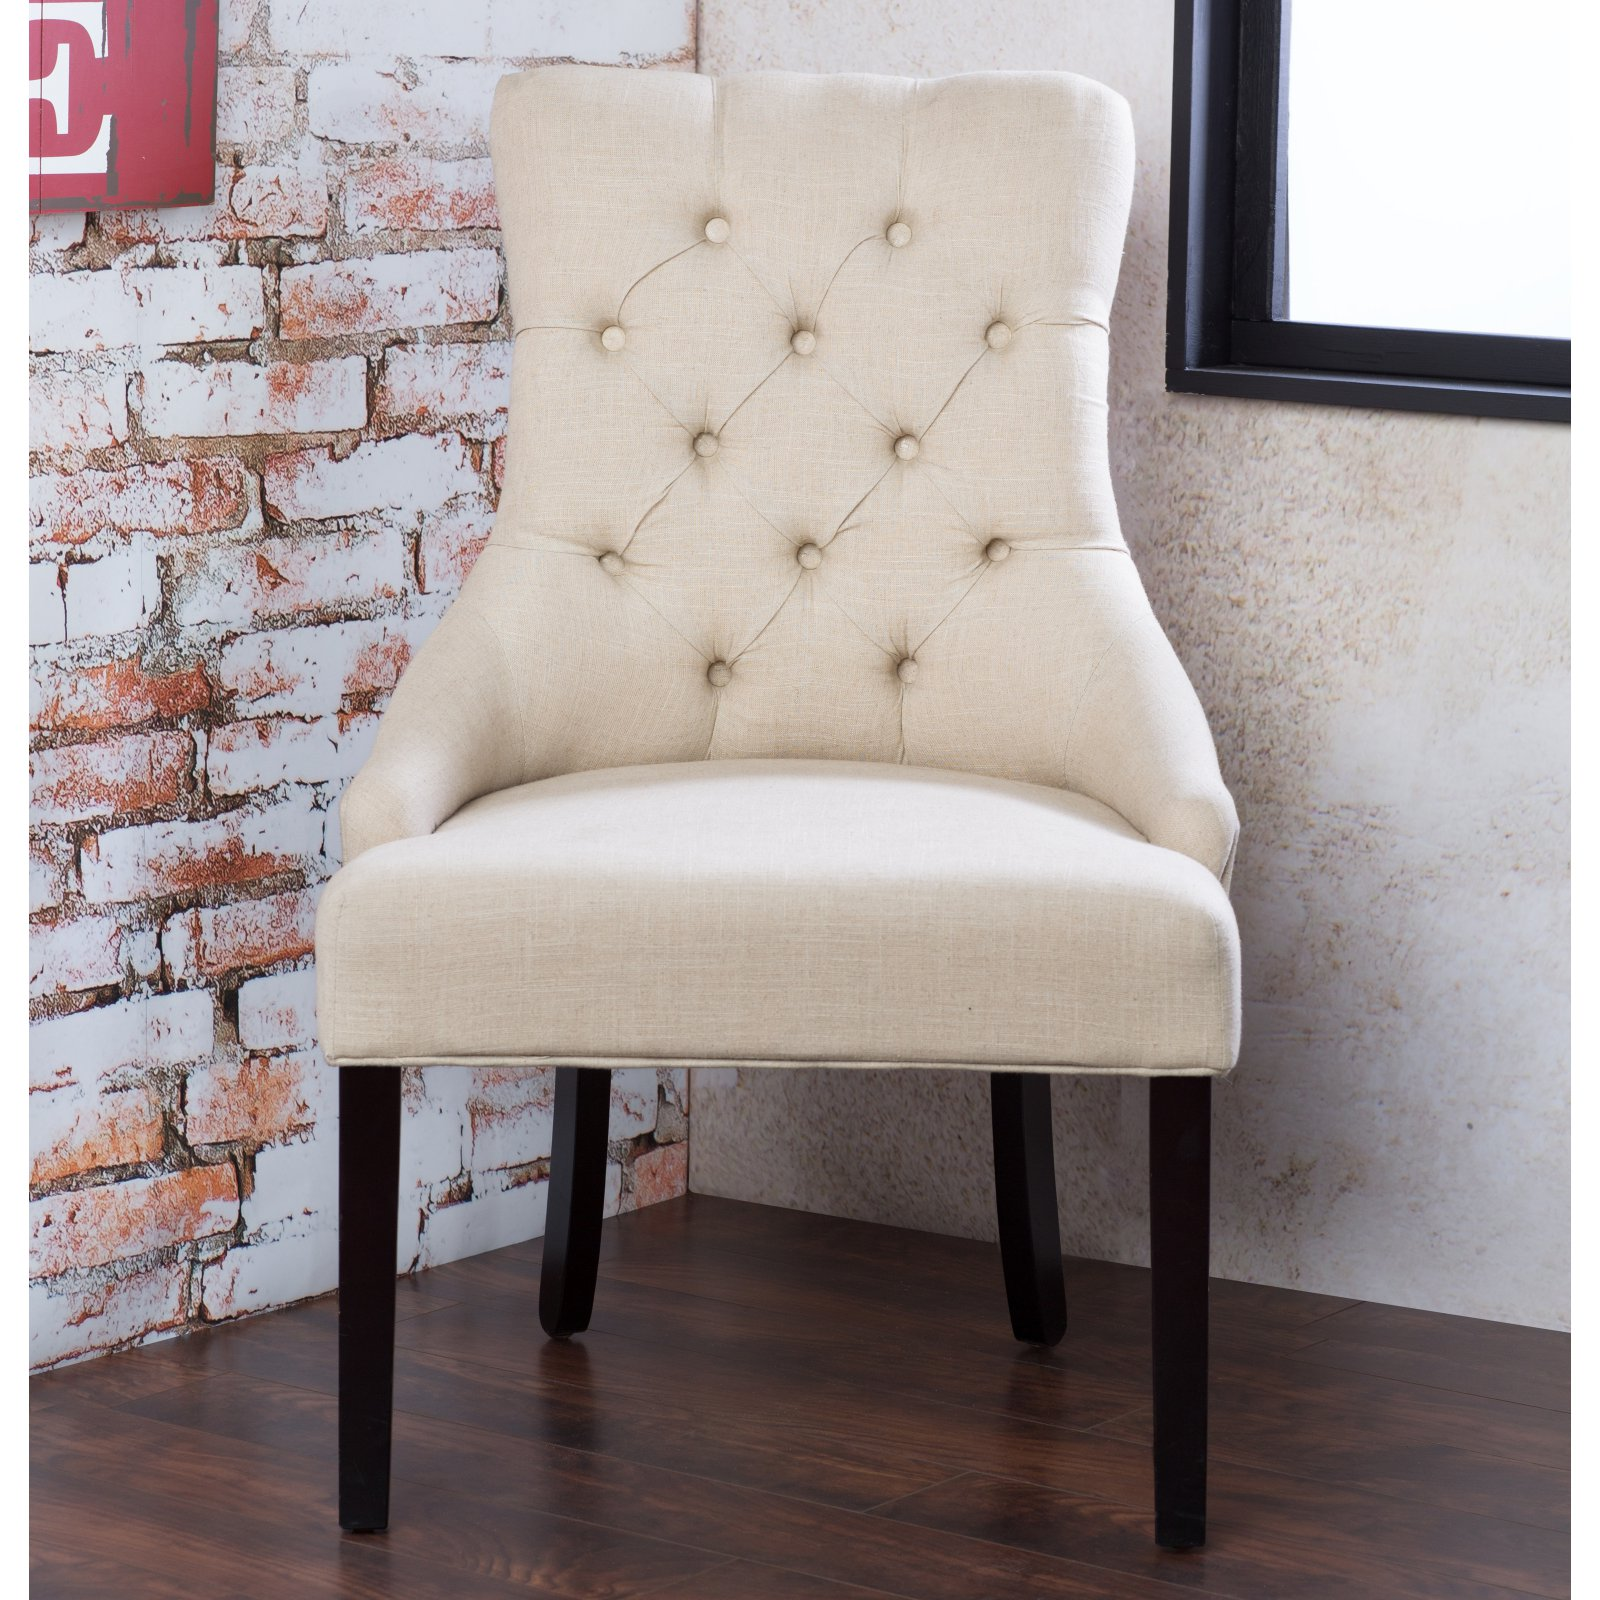 Furniture of America Jellan Tufted Flax Fabric Accent Chair - Set of 2